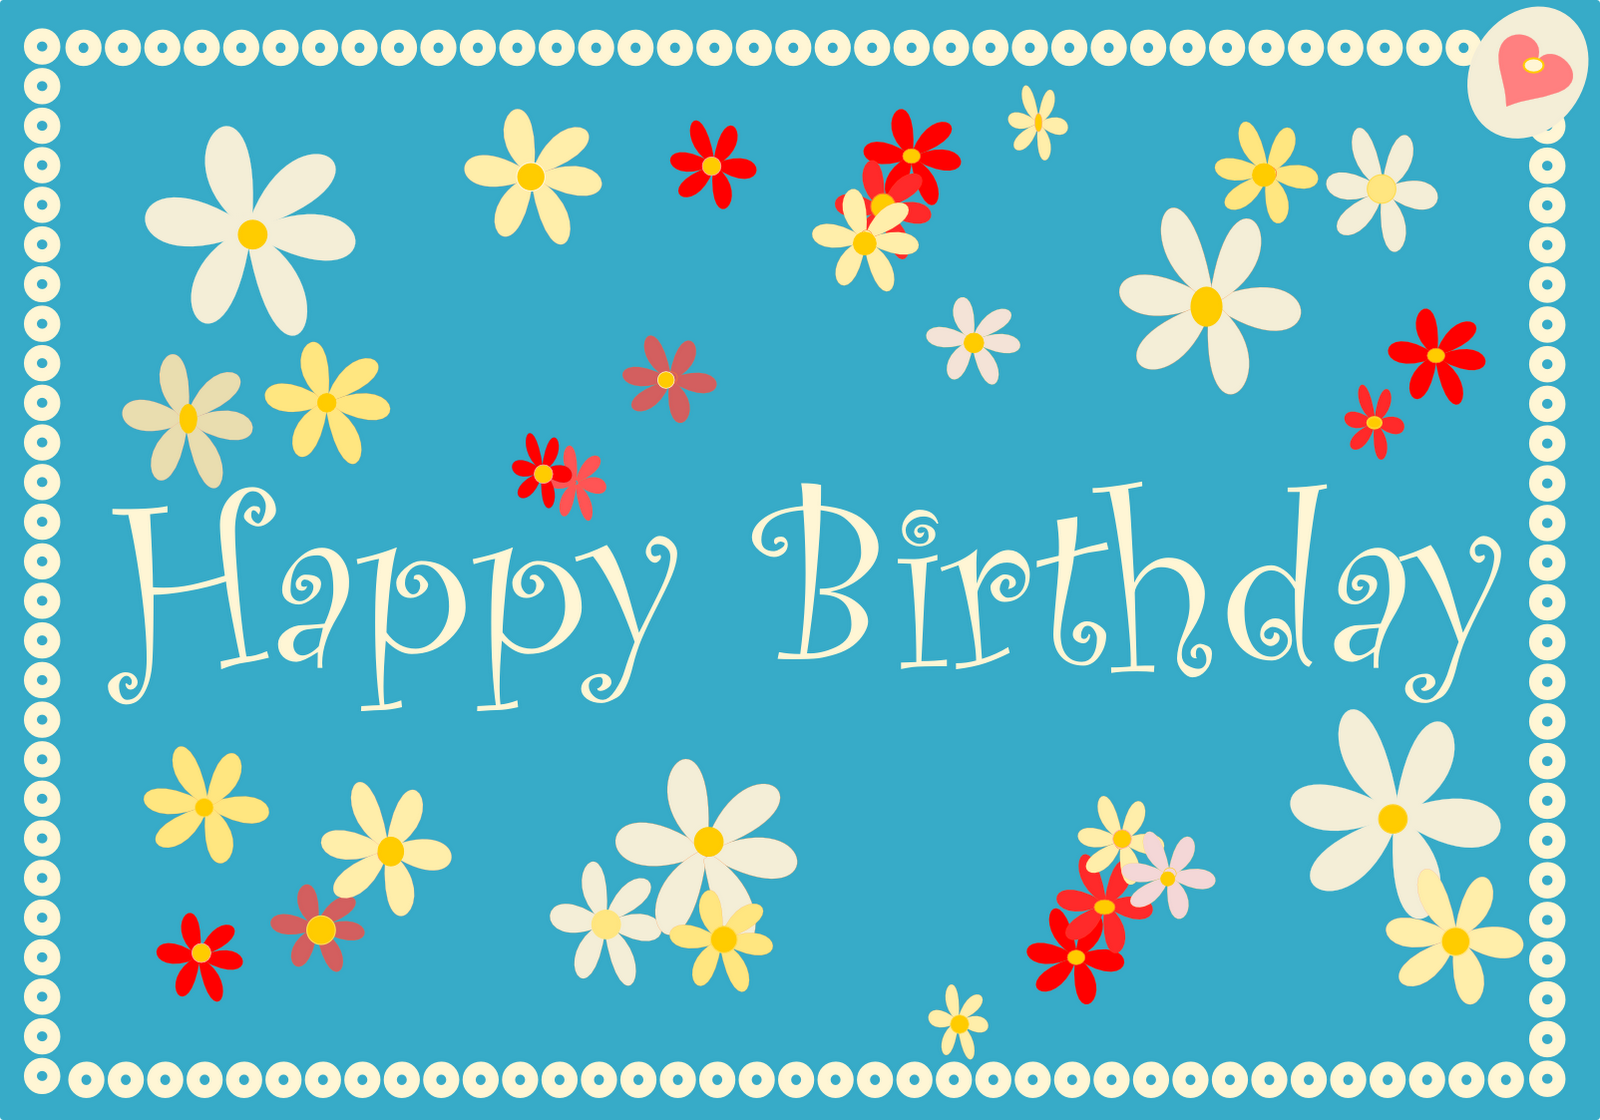 Happy birthday cards 2 coloring kids happy birthday cards bookmarktalkfo